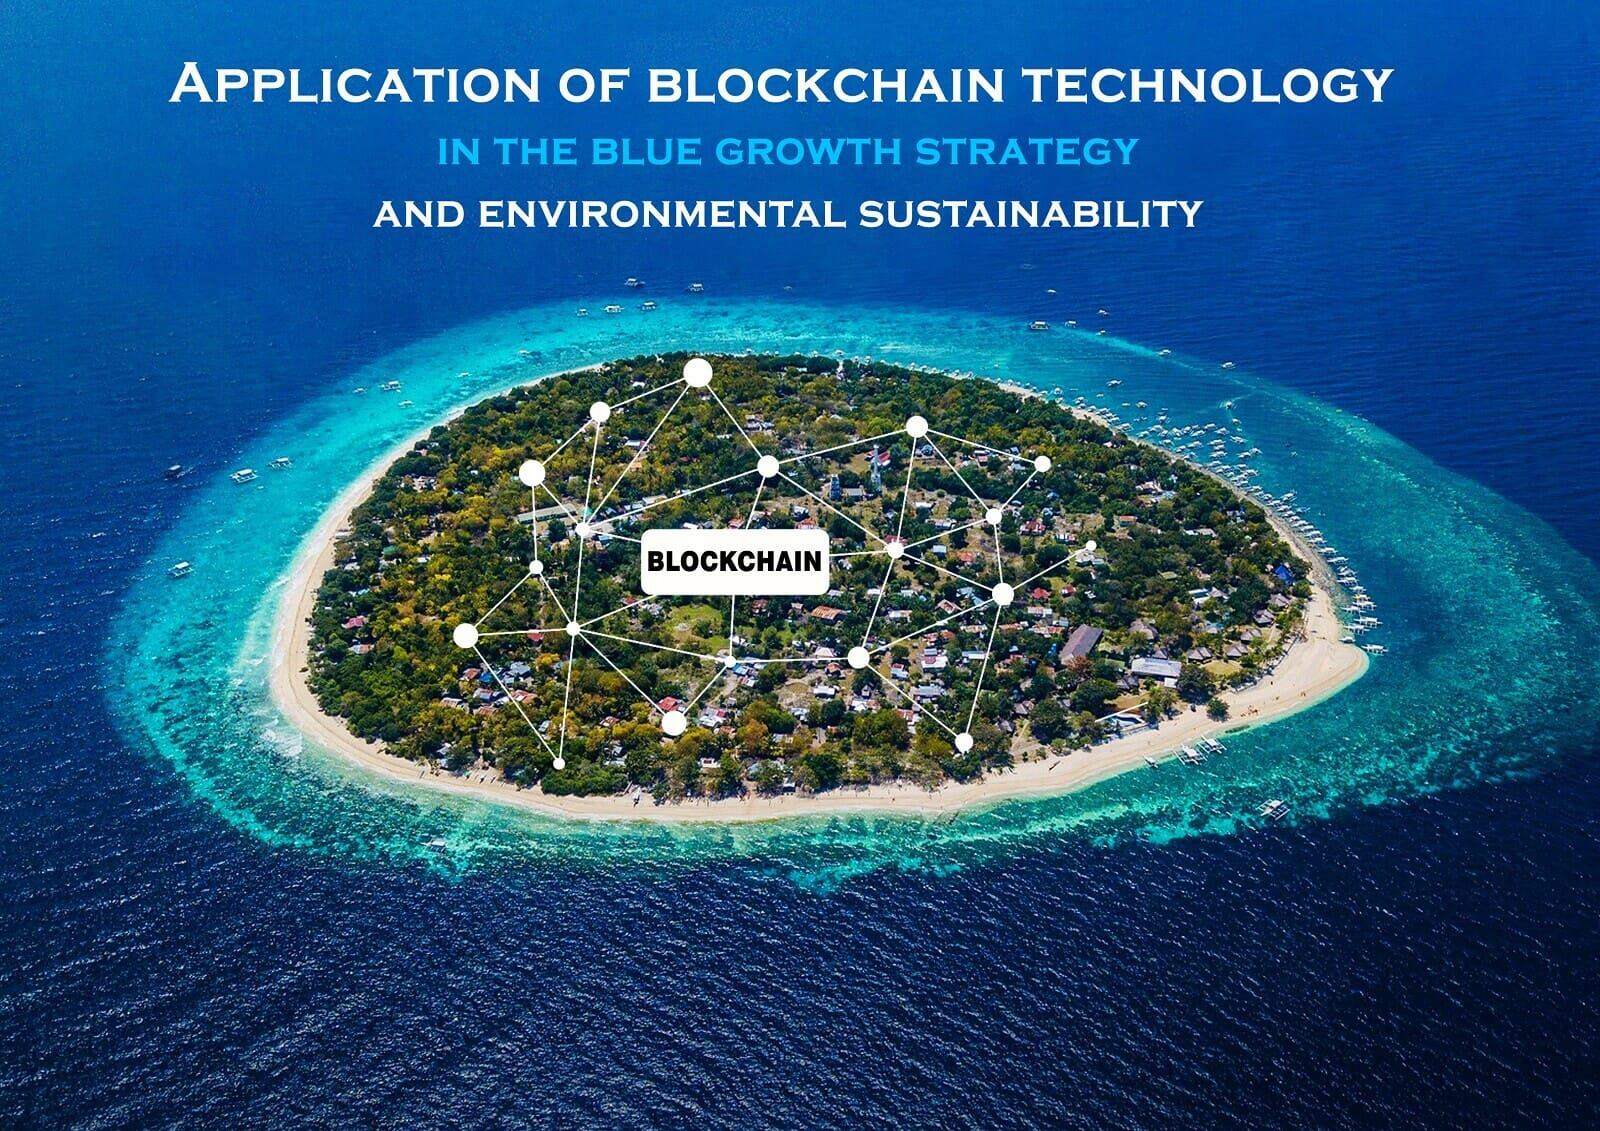 Application of Blockchain Technology in the Blue Growth Strategy and Environmental Sustainability